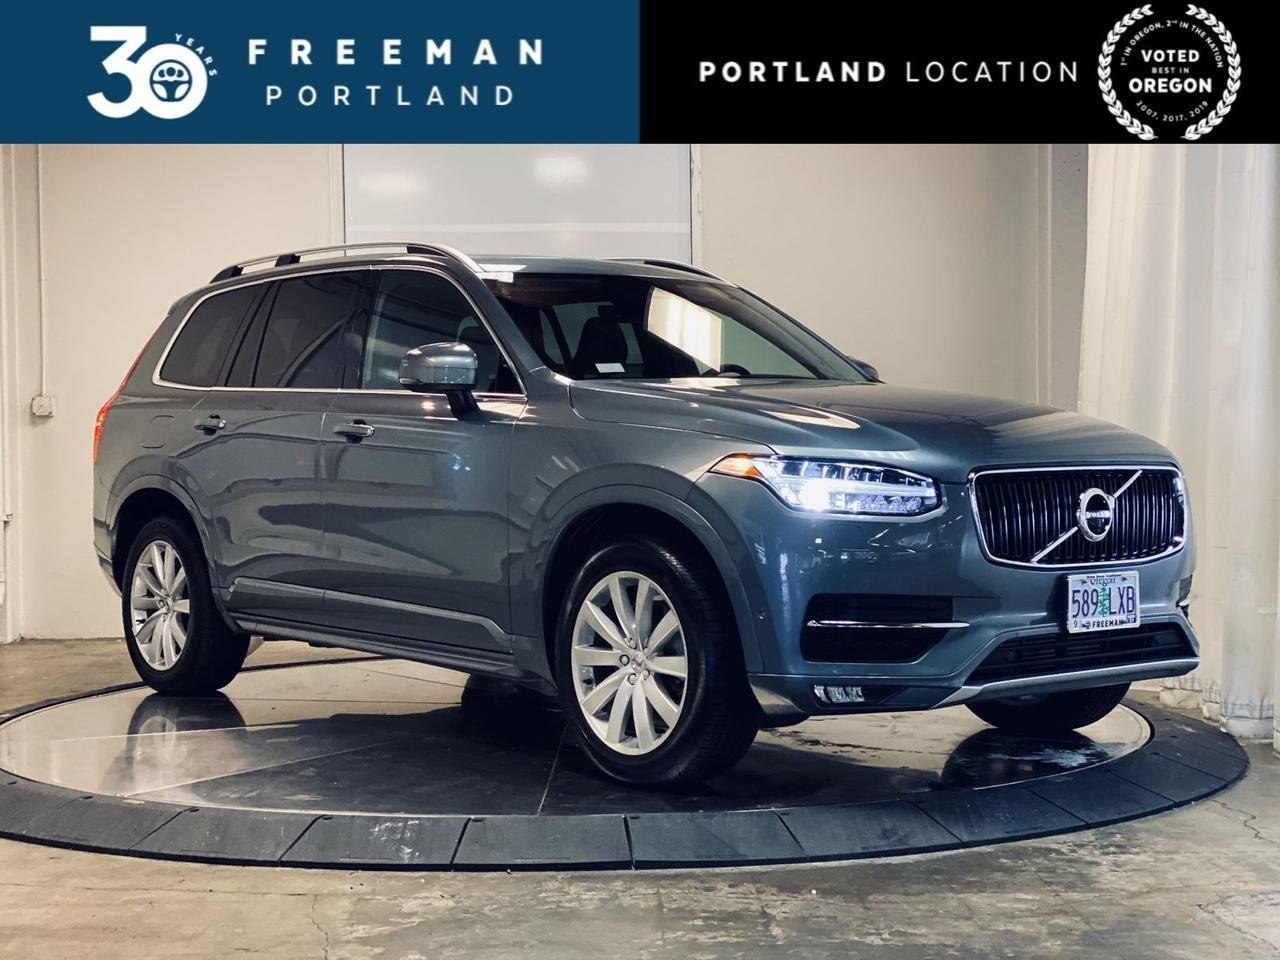 2016 Volvo XC90 T6 Momentum Surround Cam Adaptive Cruise Pilot Assist Portland OR